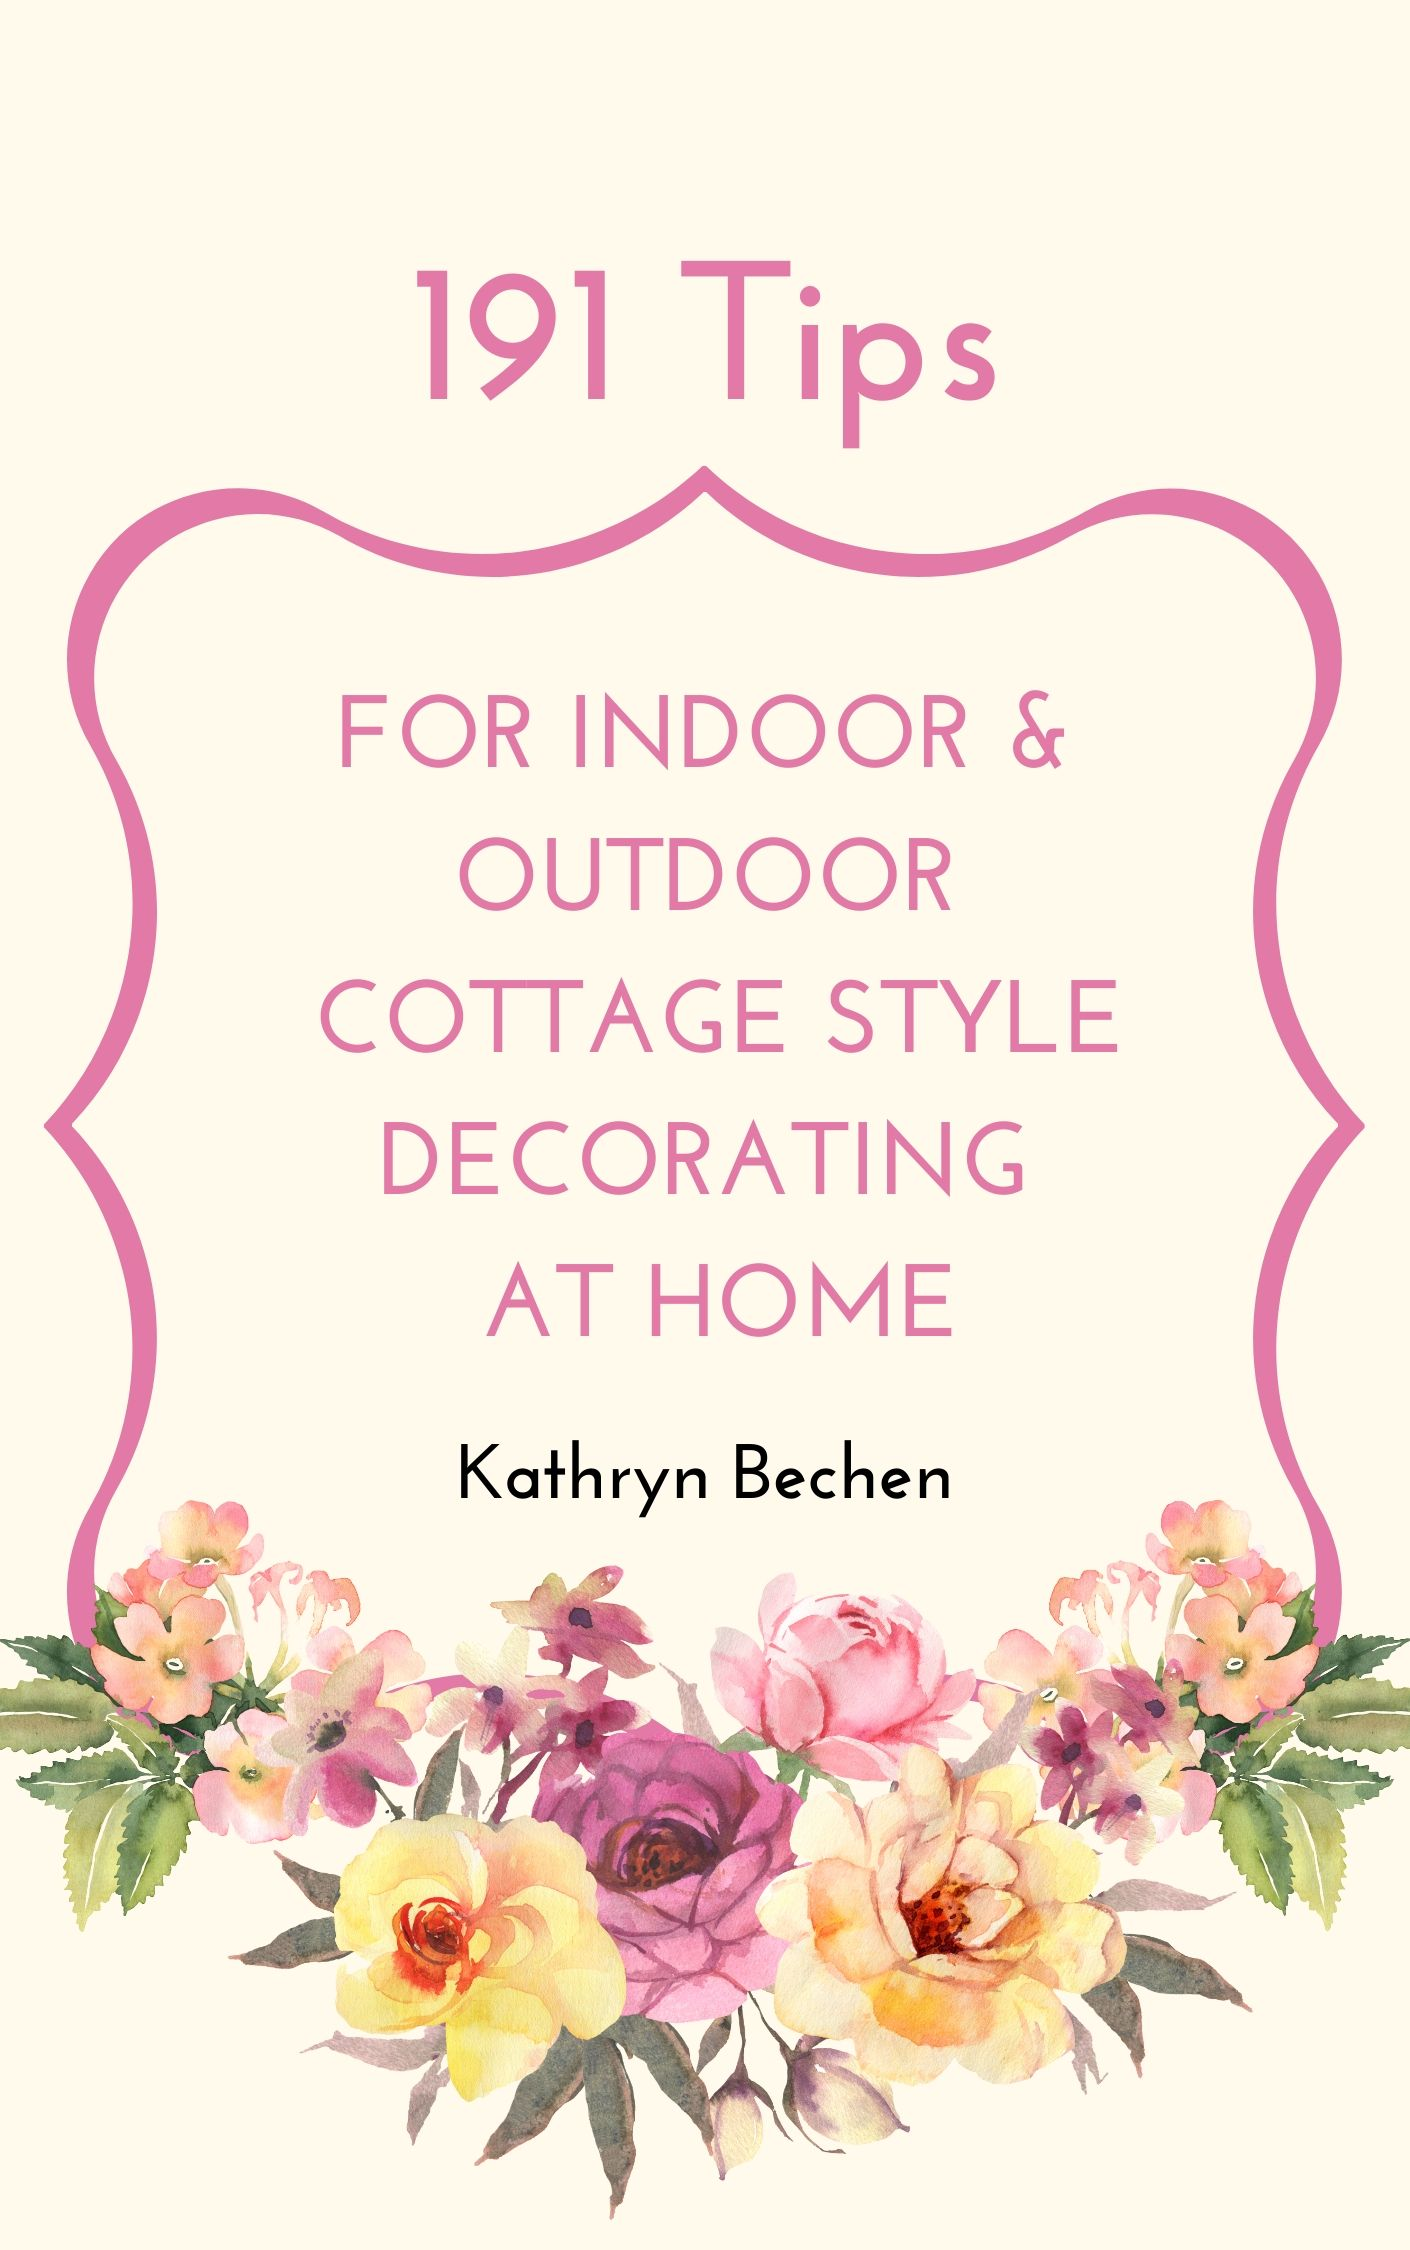 191 Tips for Indoor & Outdoor Cottage Style at Home Kathryn Bechen